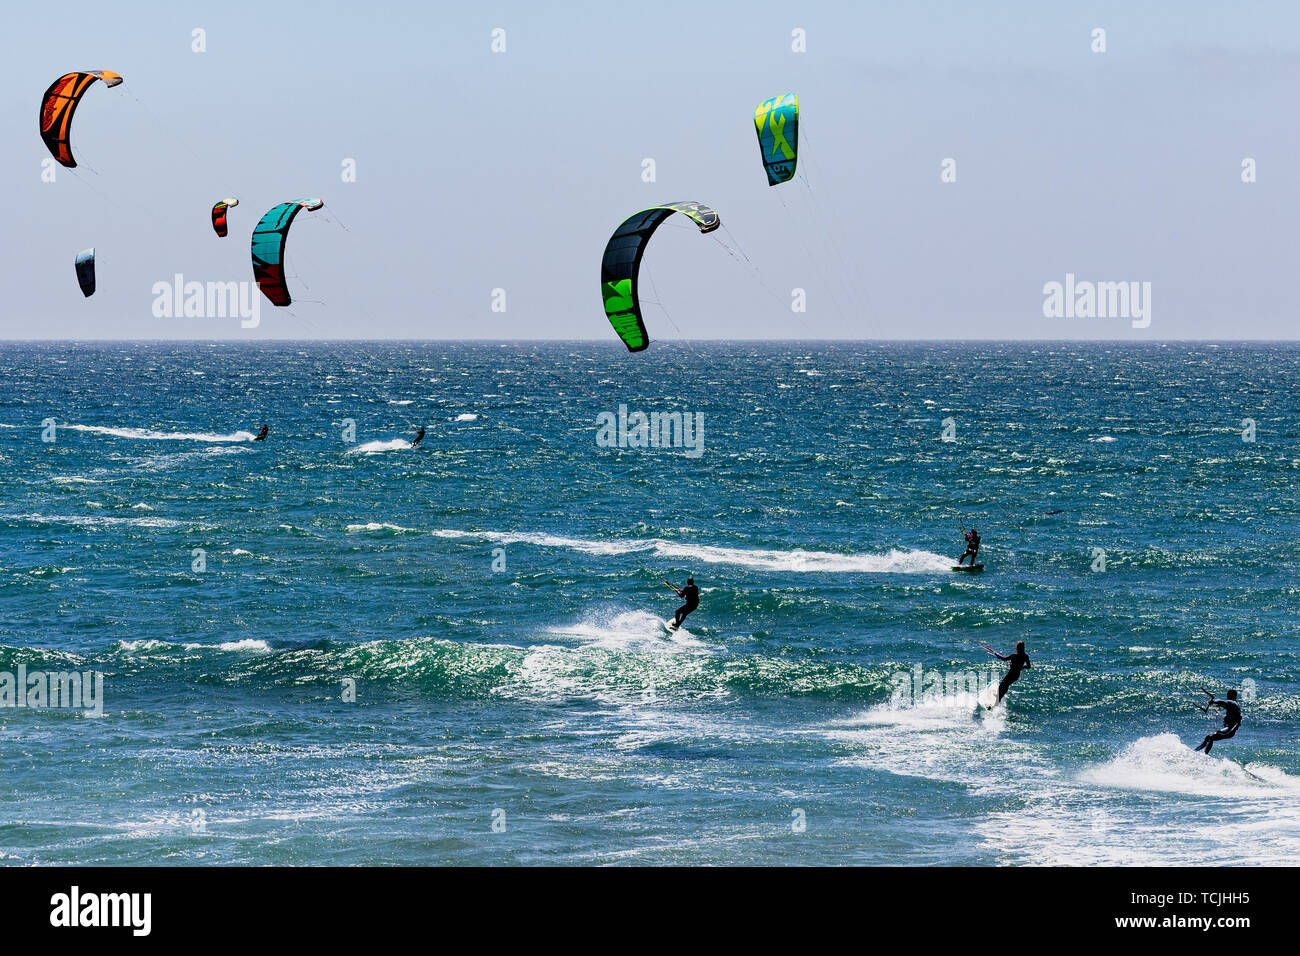 June 6, 2019 Davenport / CA / USA - People kite surfing in the Pacific Ocean, near Santa Cruz, on a sunny and warm day - Stock Image